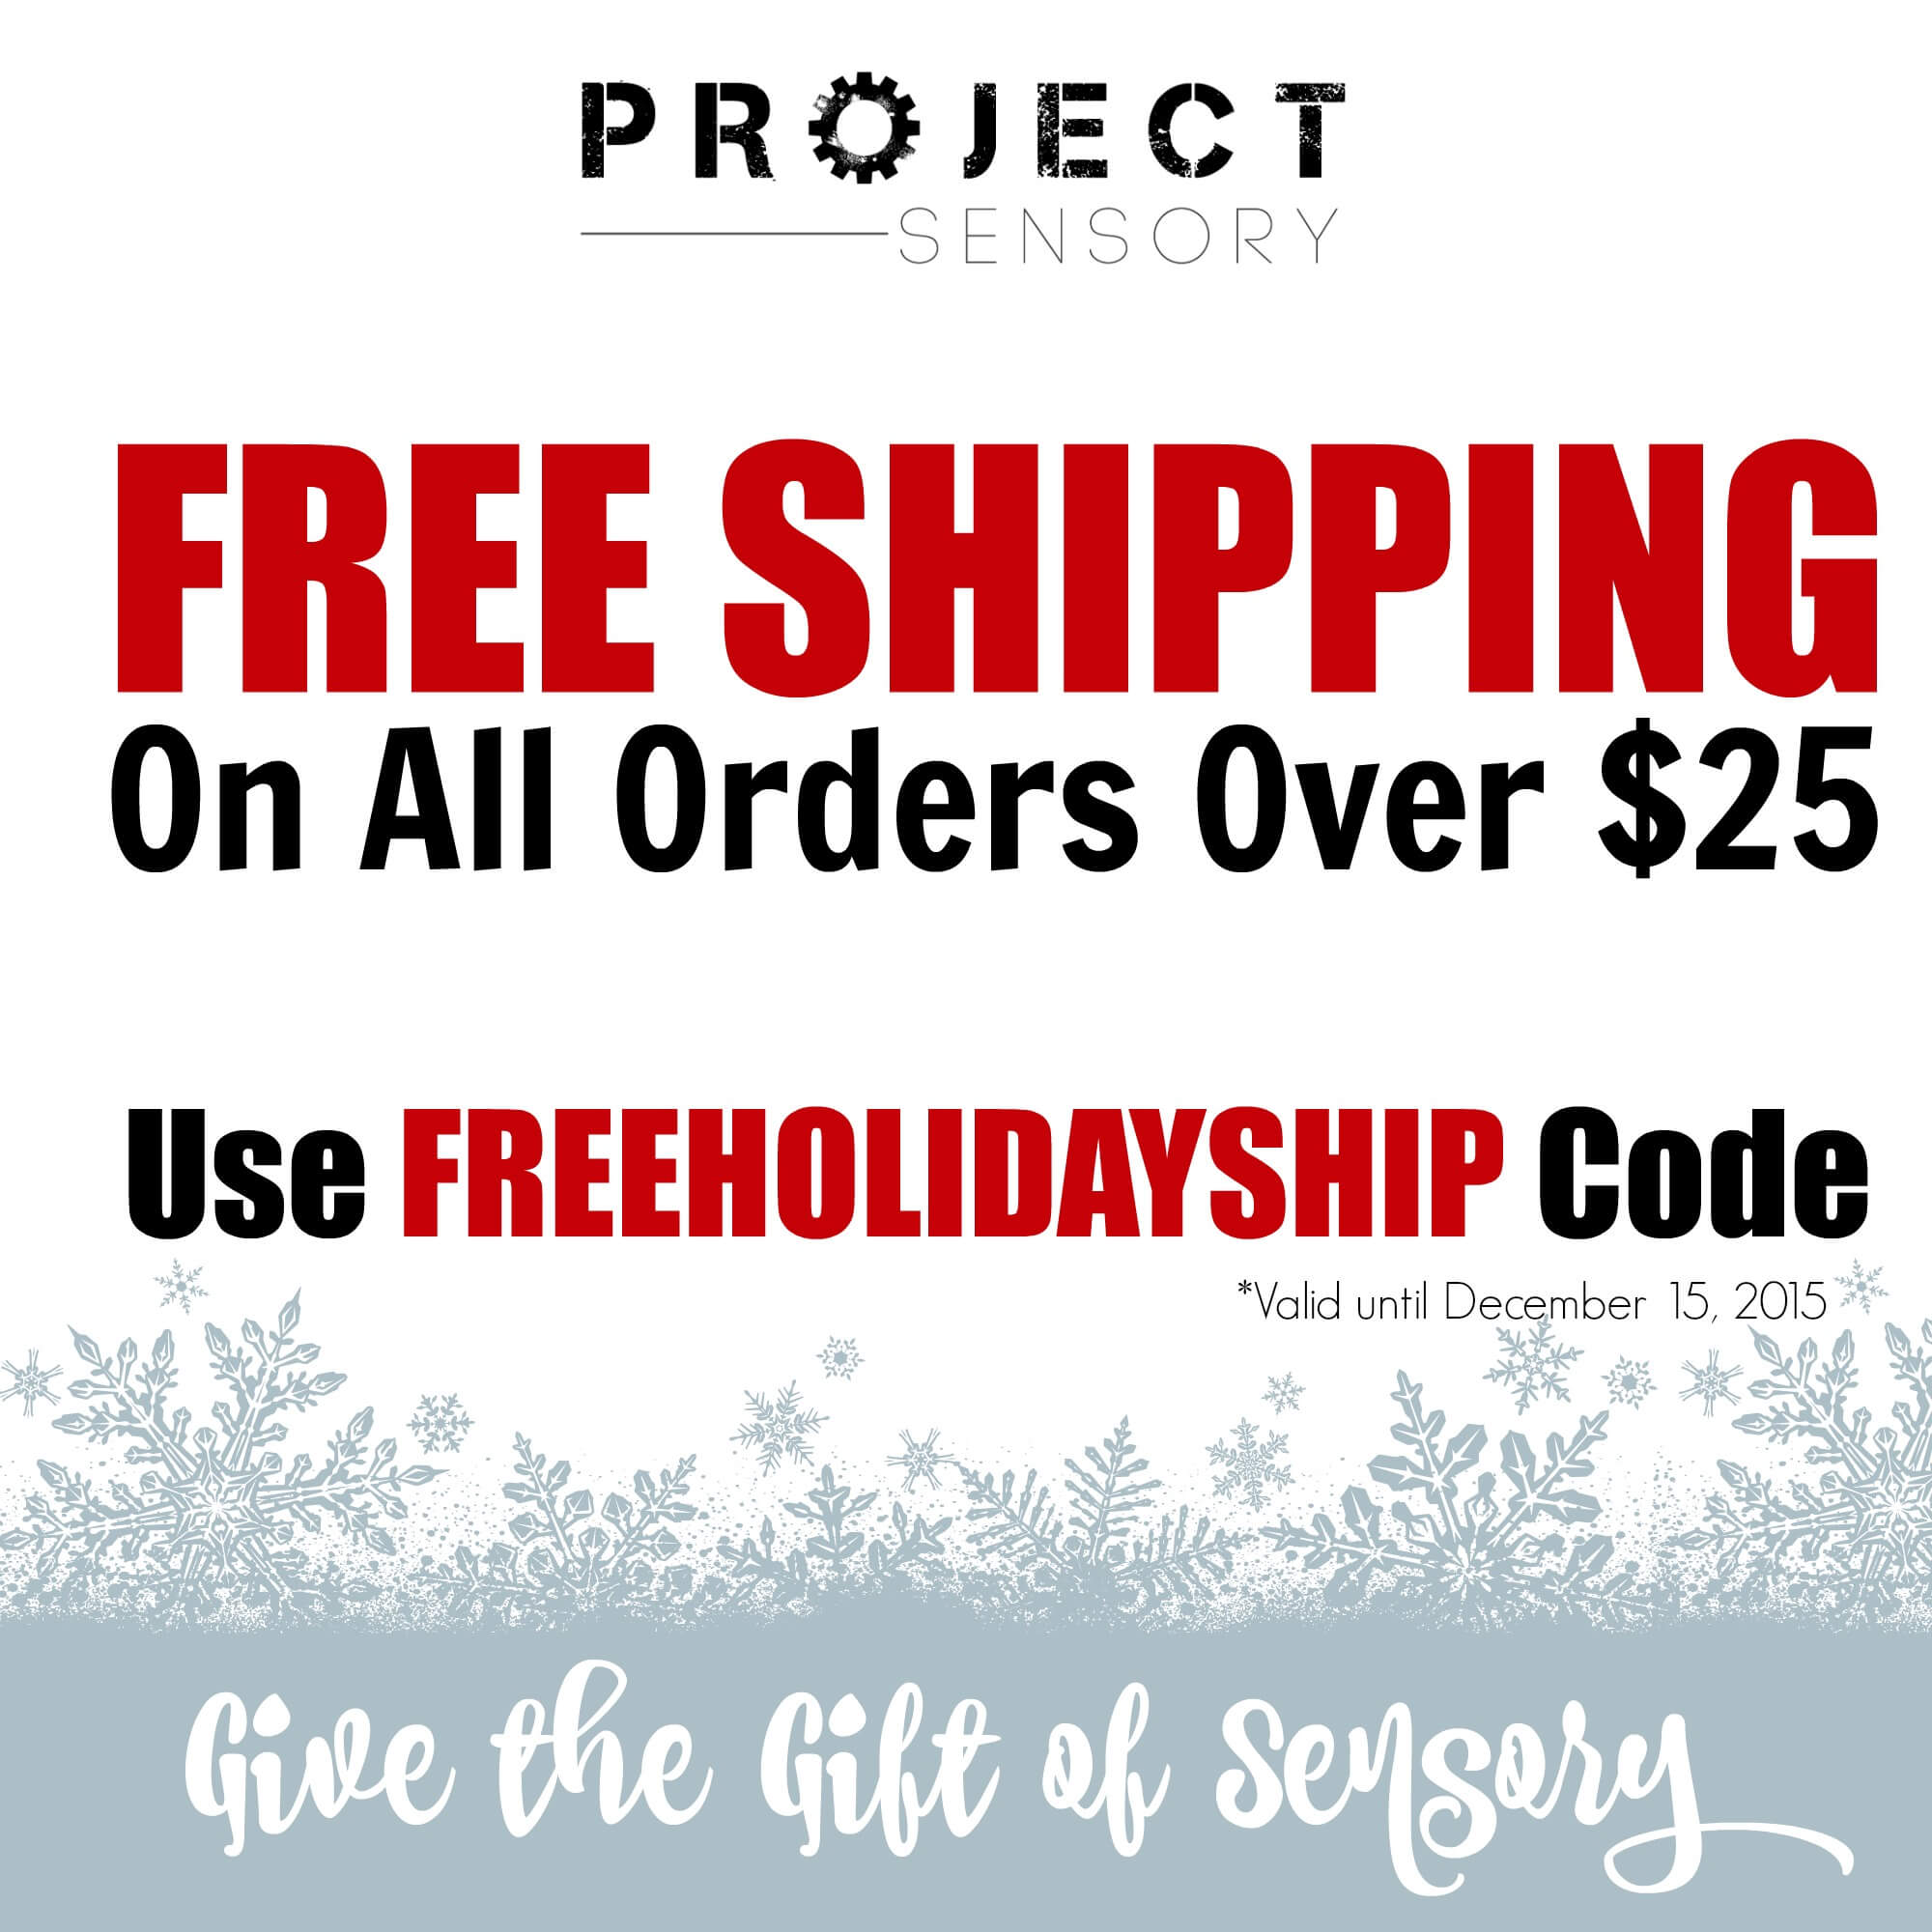 Save on Shipping on all orders over $25 from now until December 15th